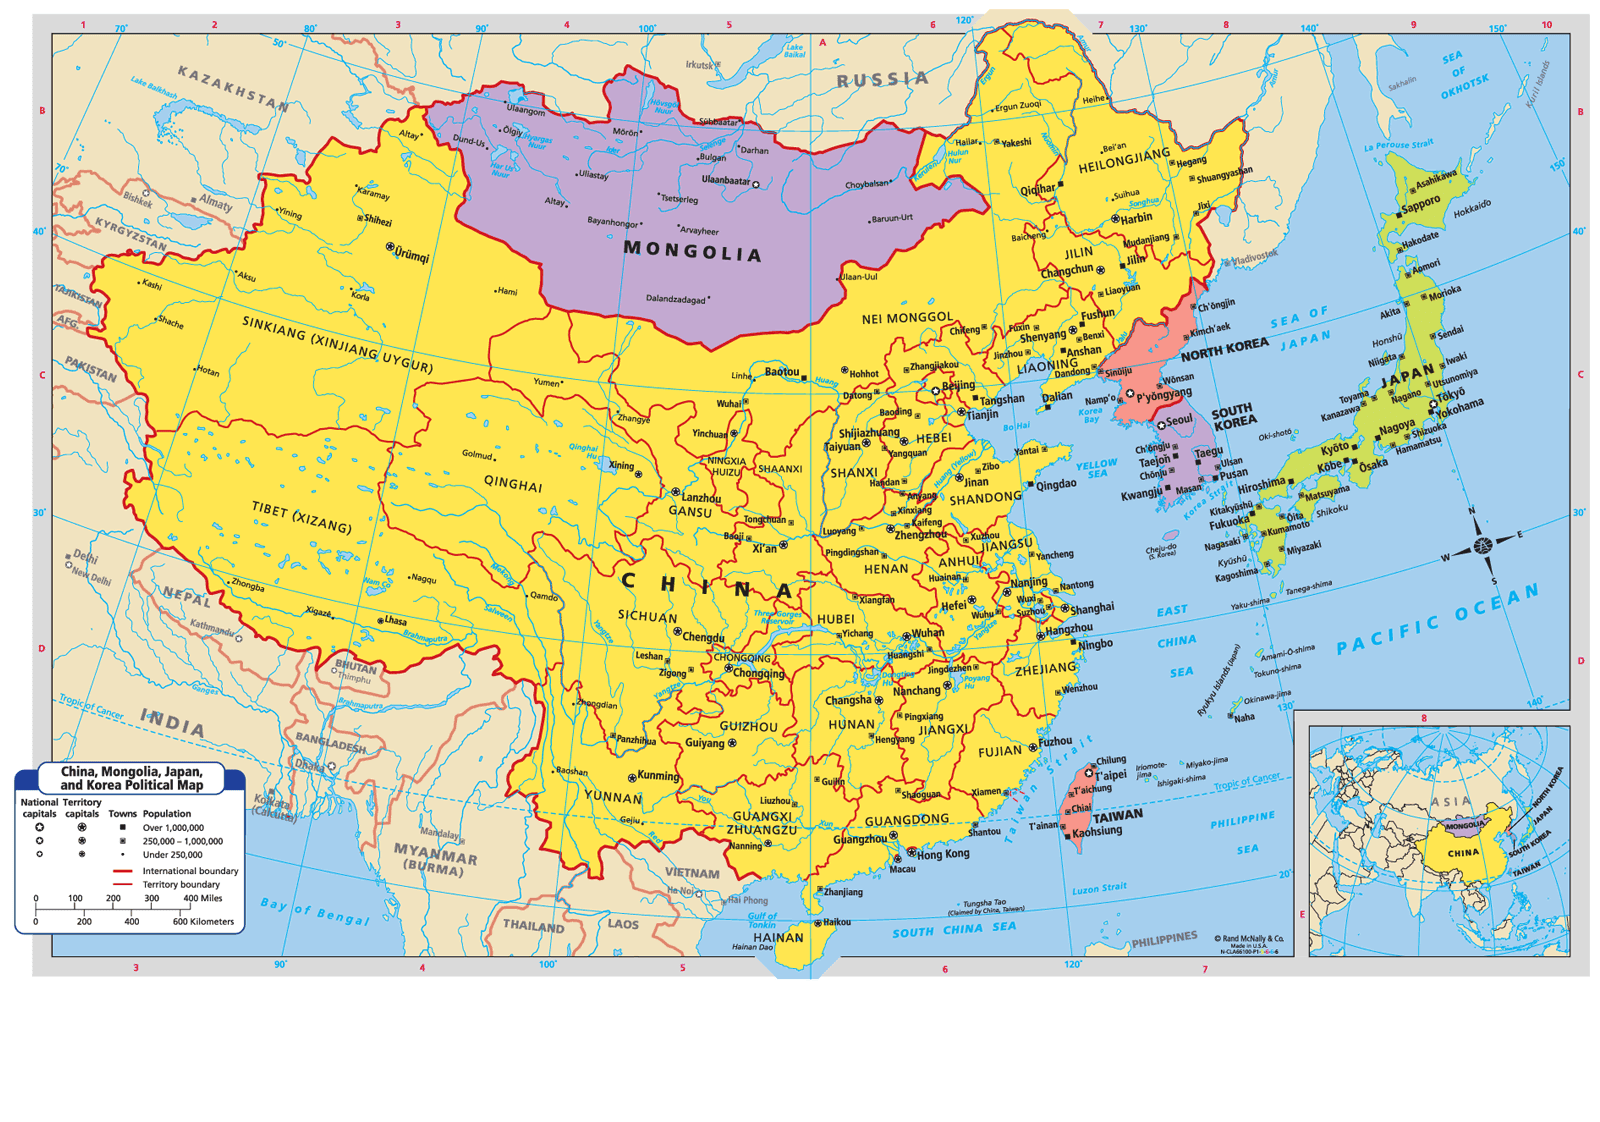 Maps China Mongolia The Koreas And Japan - China map